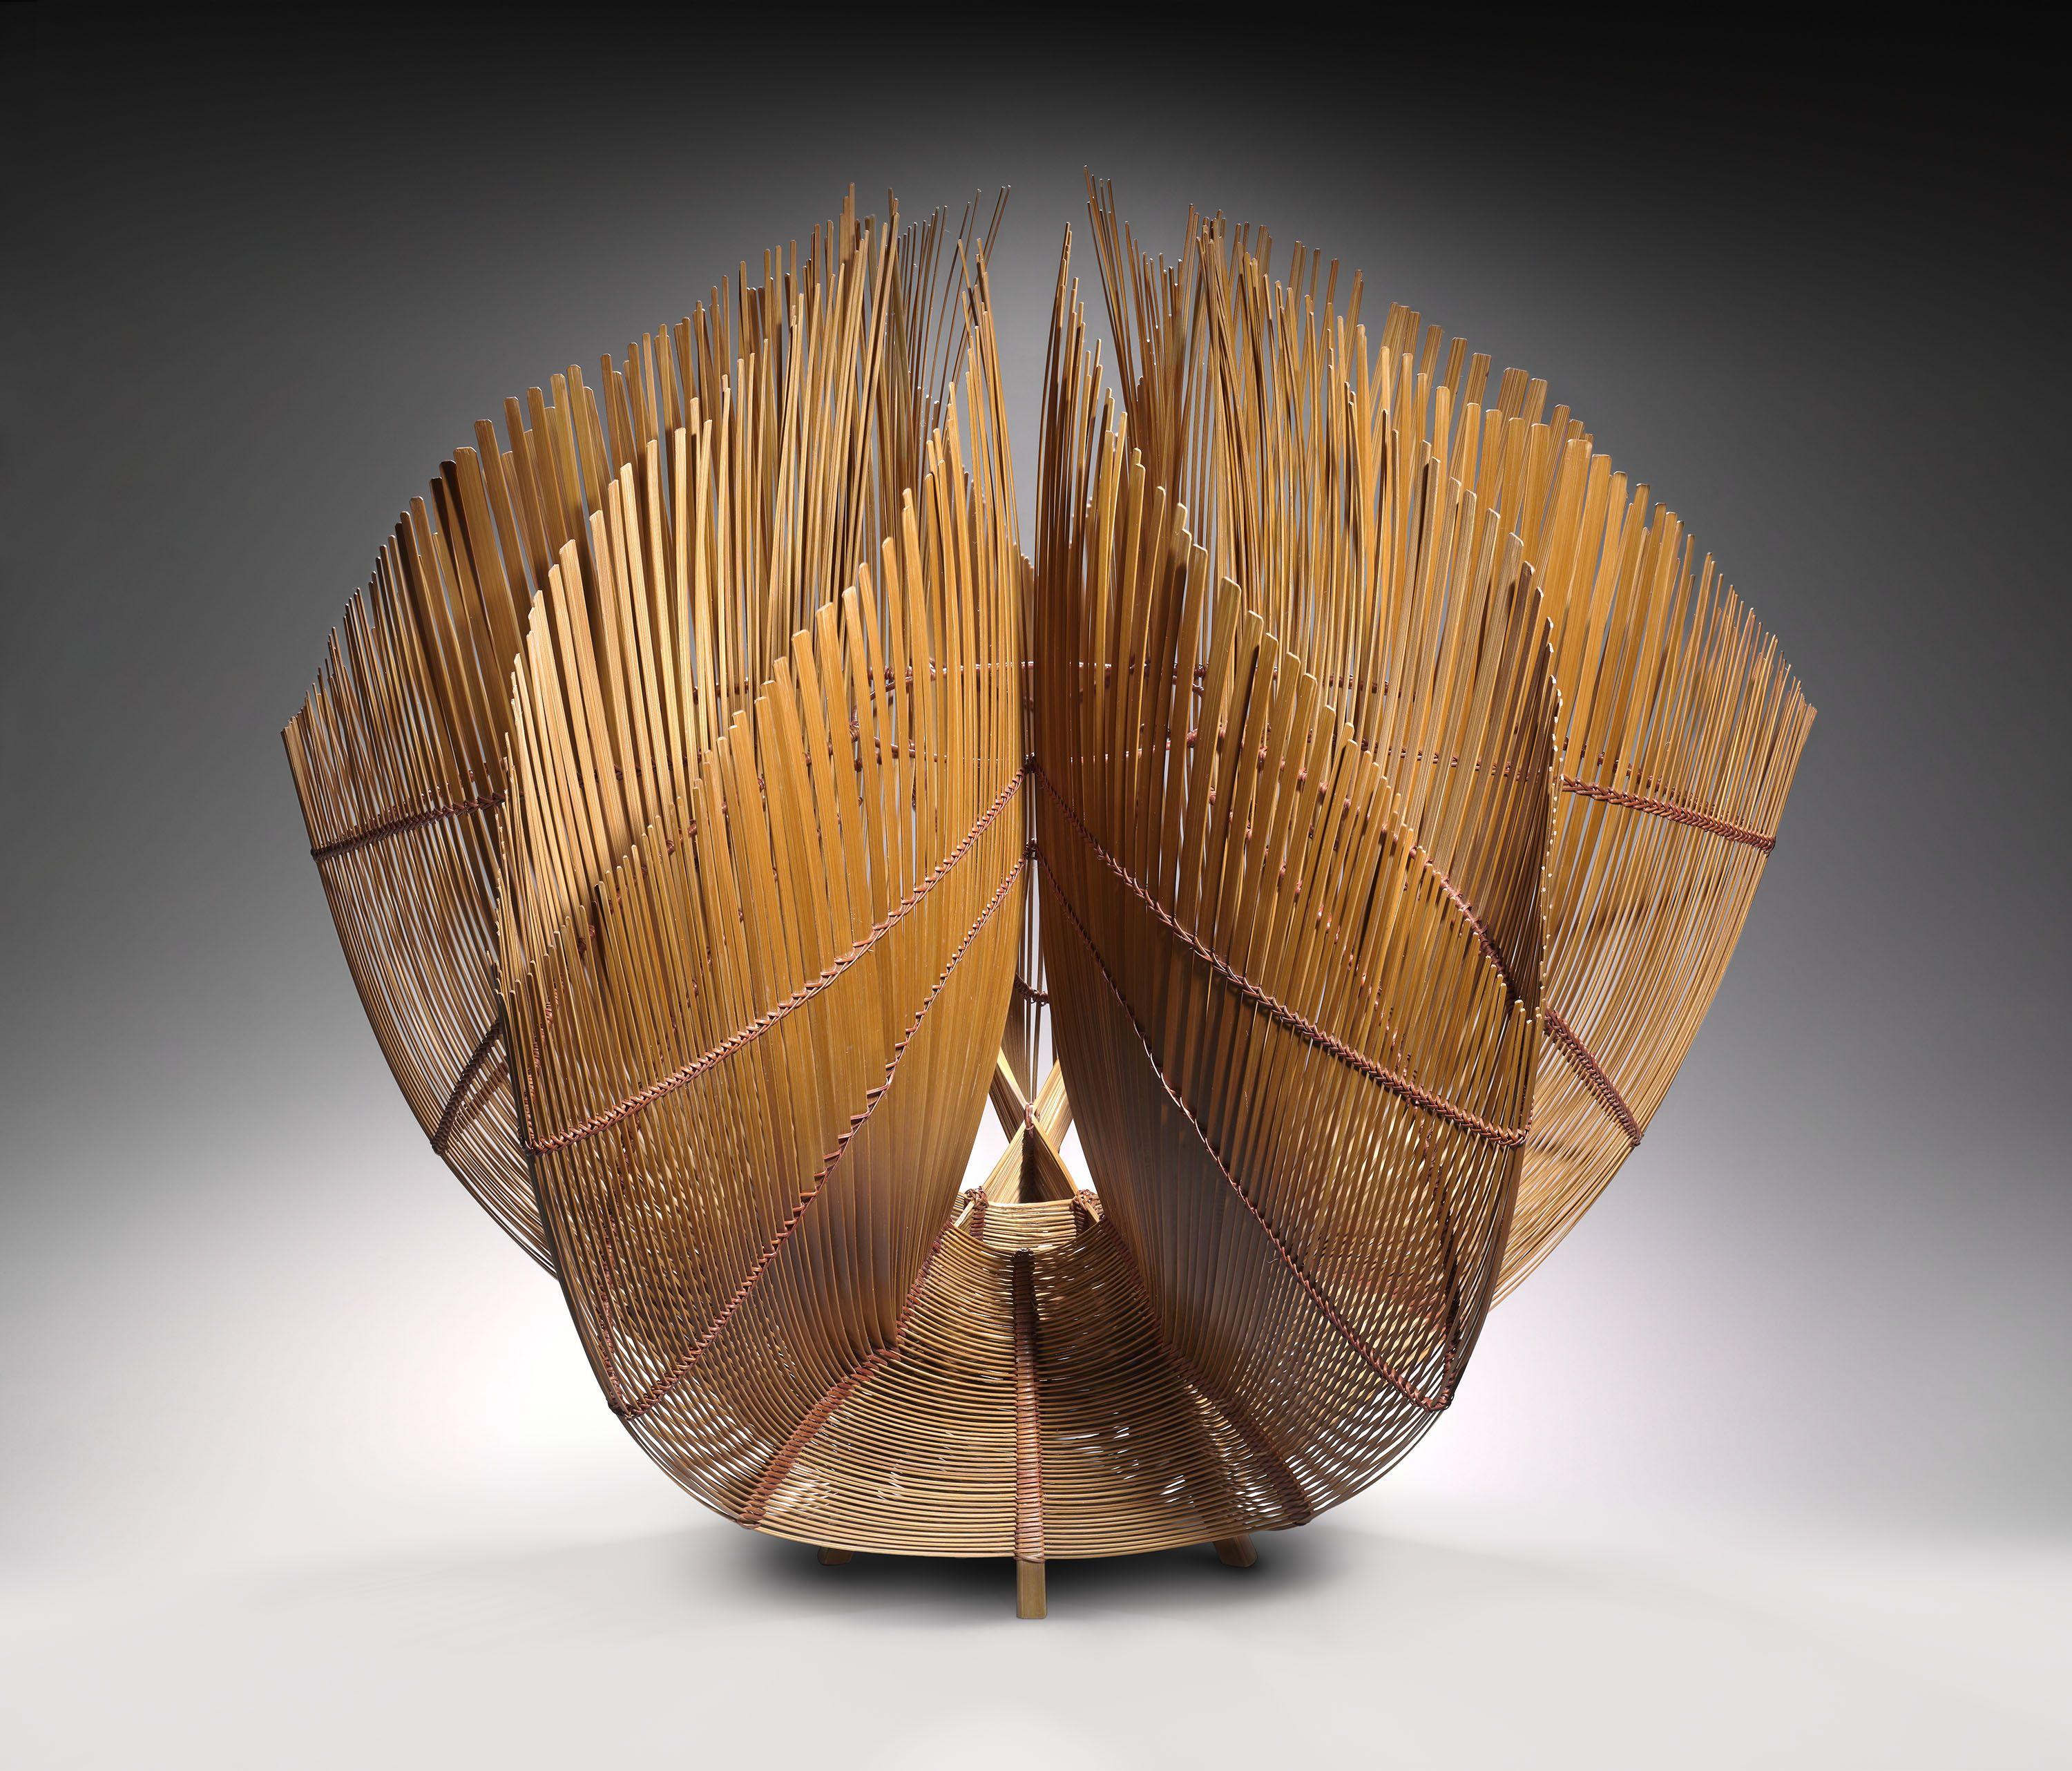 Fired Earth Woven Bamboo Contemporary Japanese Ceramics